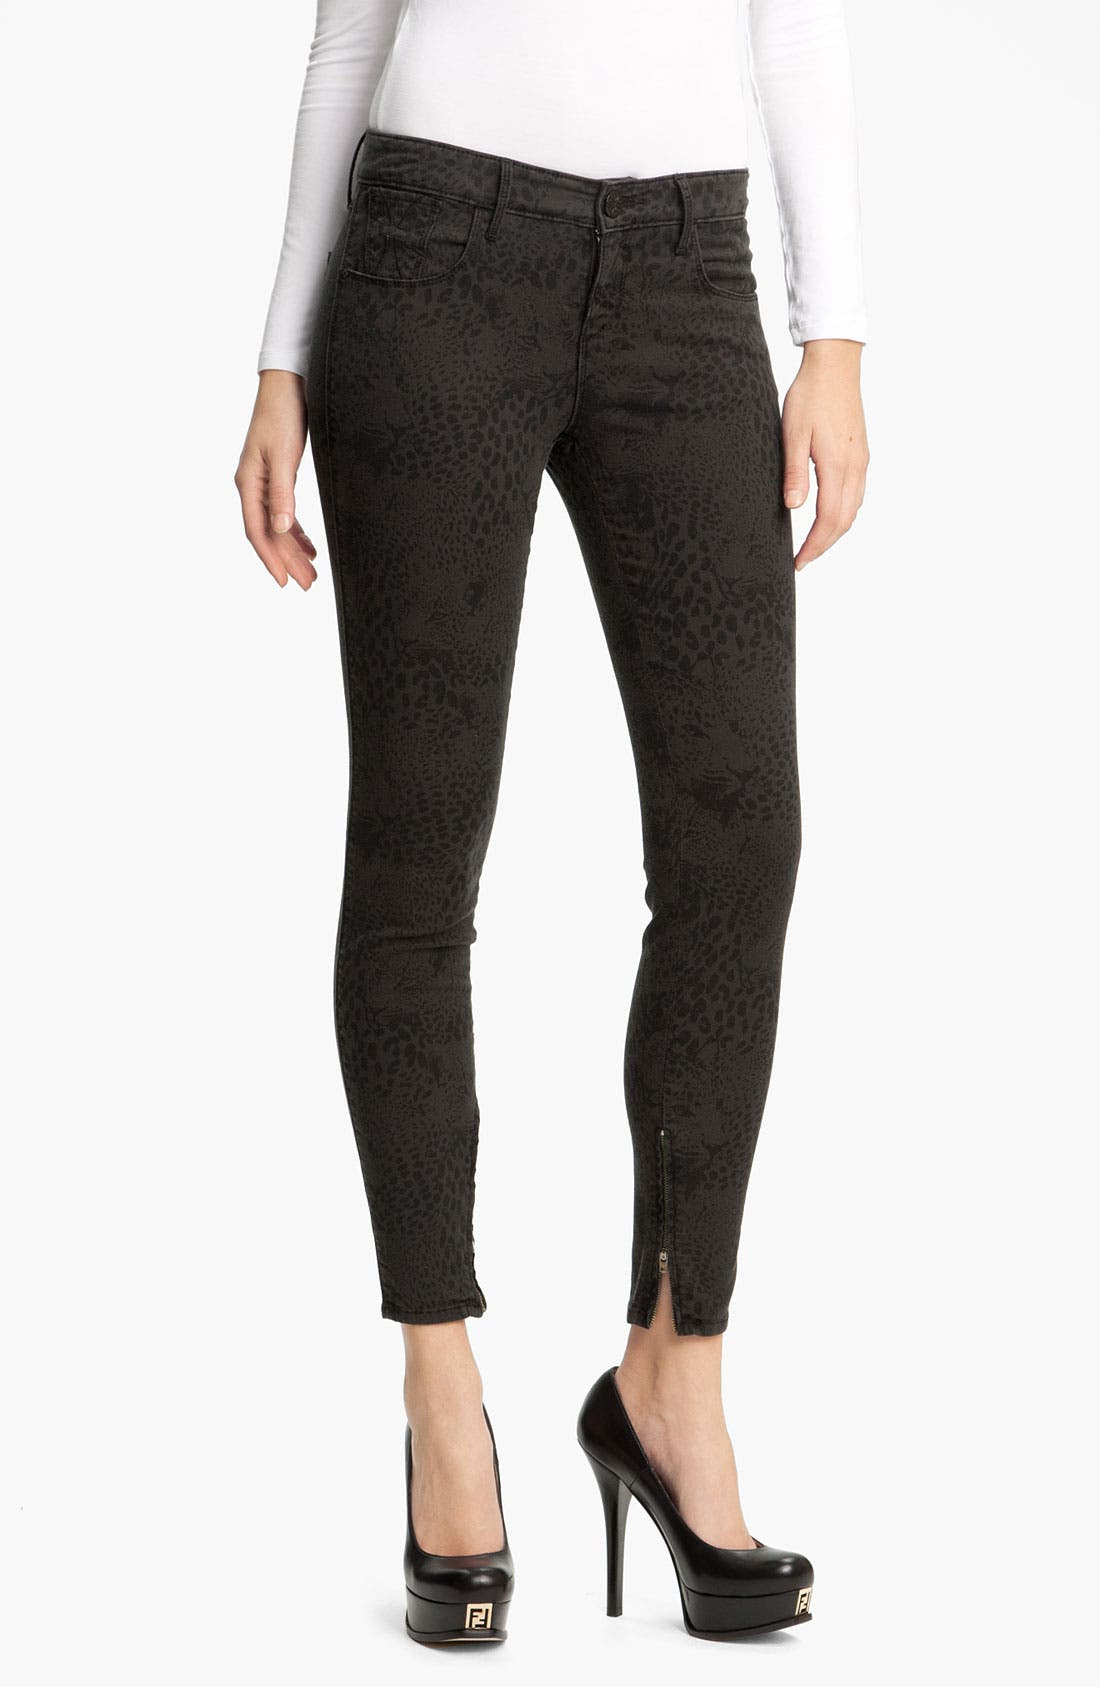 Alternate Image 1 Selected - Habitual 'Almas' Leopard Print Skinny Stretch Jeans